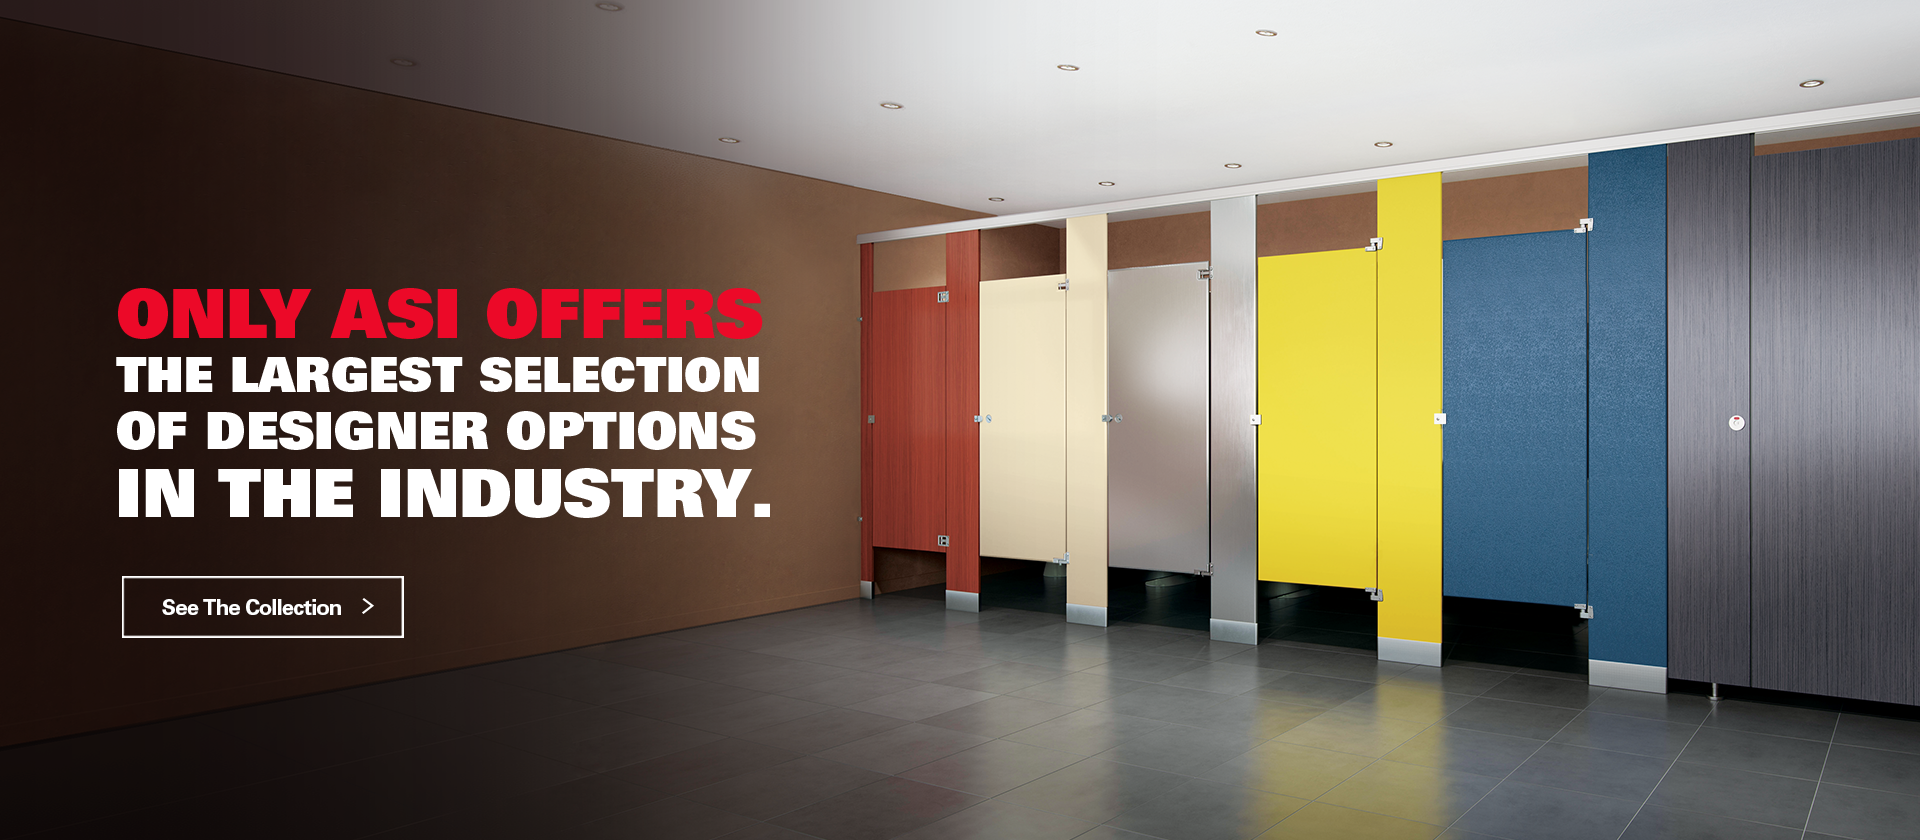 ASI Global Partitions ASI Global Partitions - Solid plastic bathroom partitions